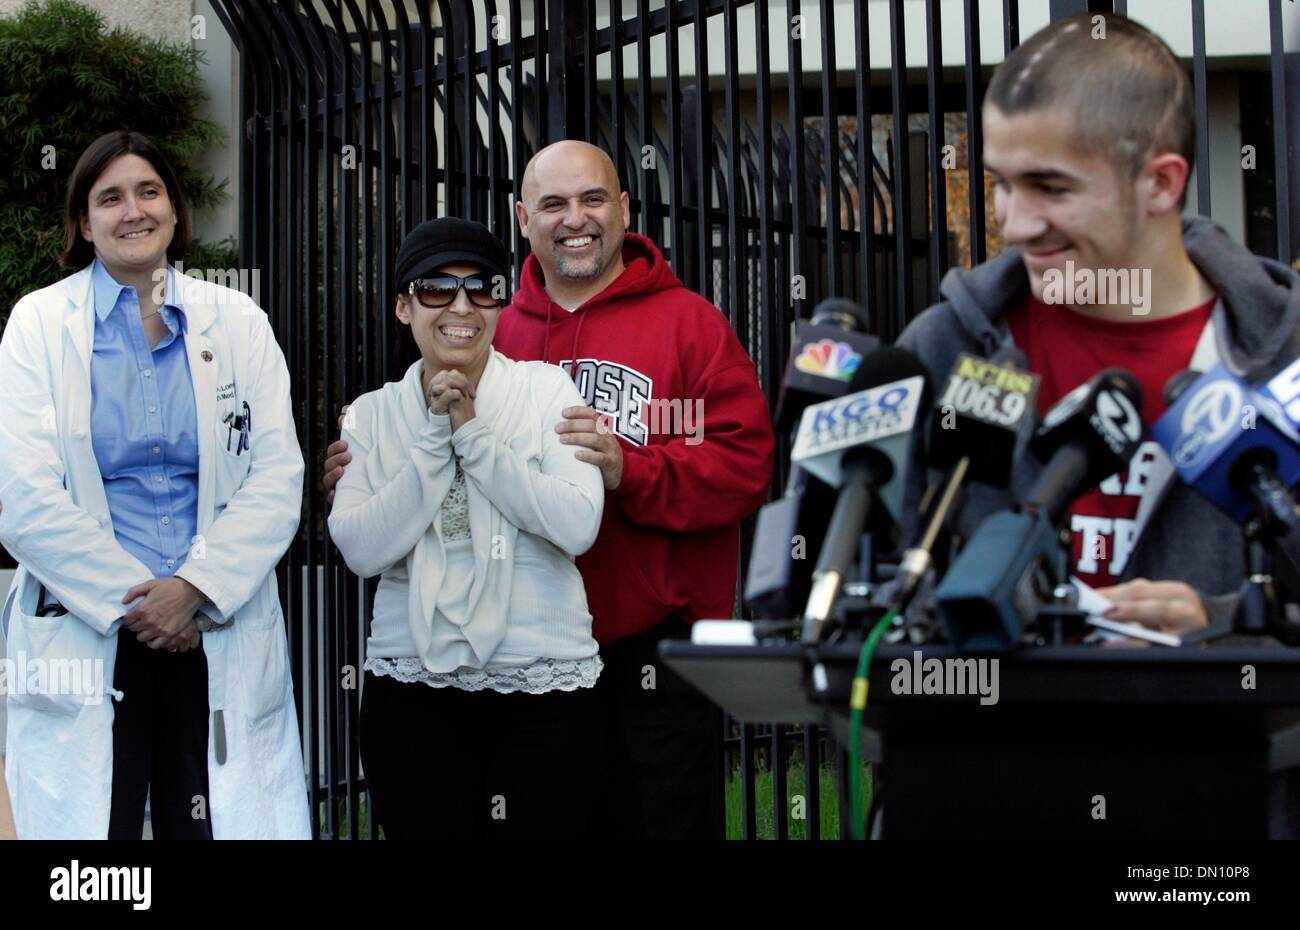 Dec 23, 2009 - San Jose, California - While MATT BLEA, right, makes a statement to journalists, his parents, JANE Stock Photo